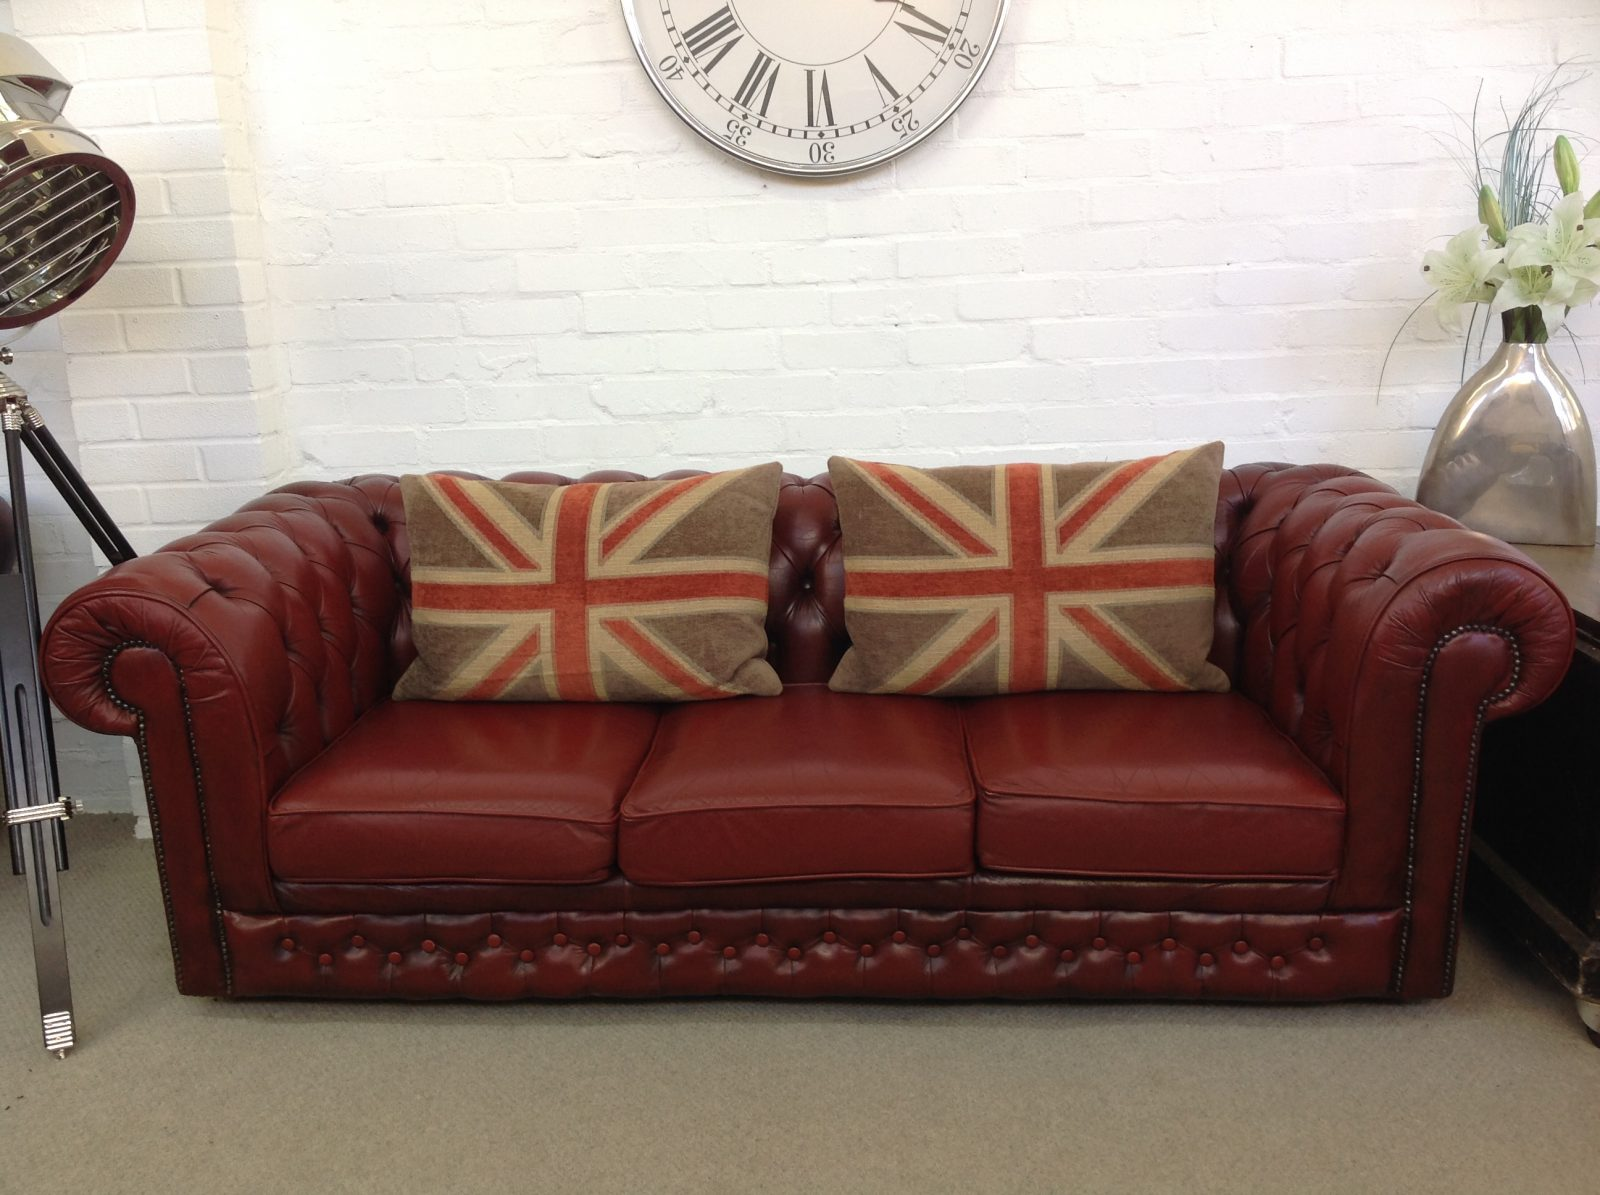 Antique Red 3 Seater Chesterfield Sofa.( Matching Wingback Armchair Available )